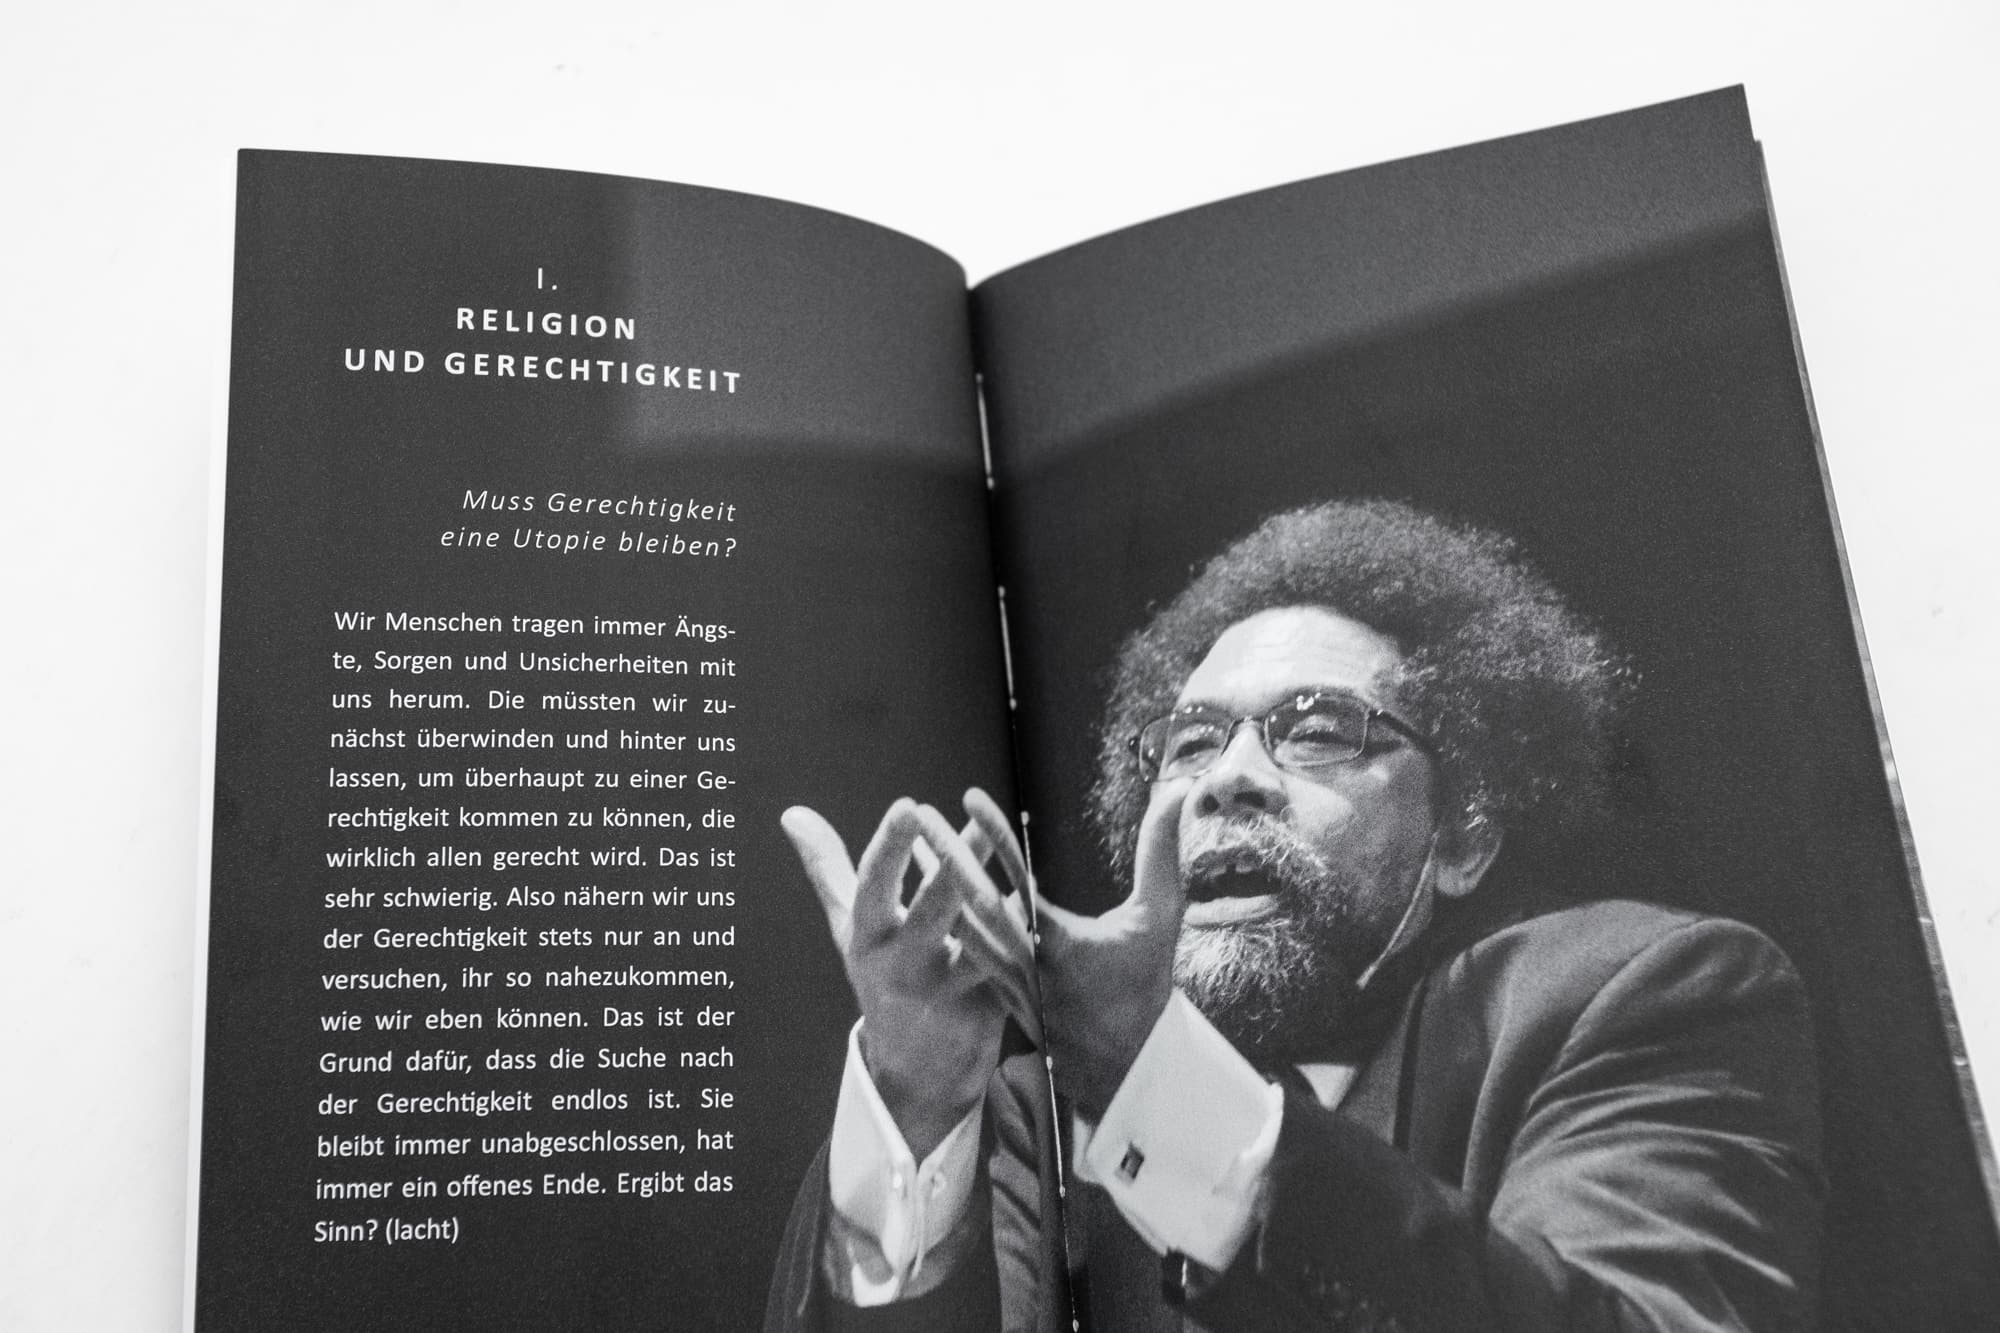 Publication by the philosophical research institute Hannover on the discussion with Cornel West in 2014.